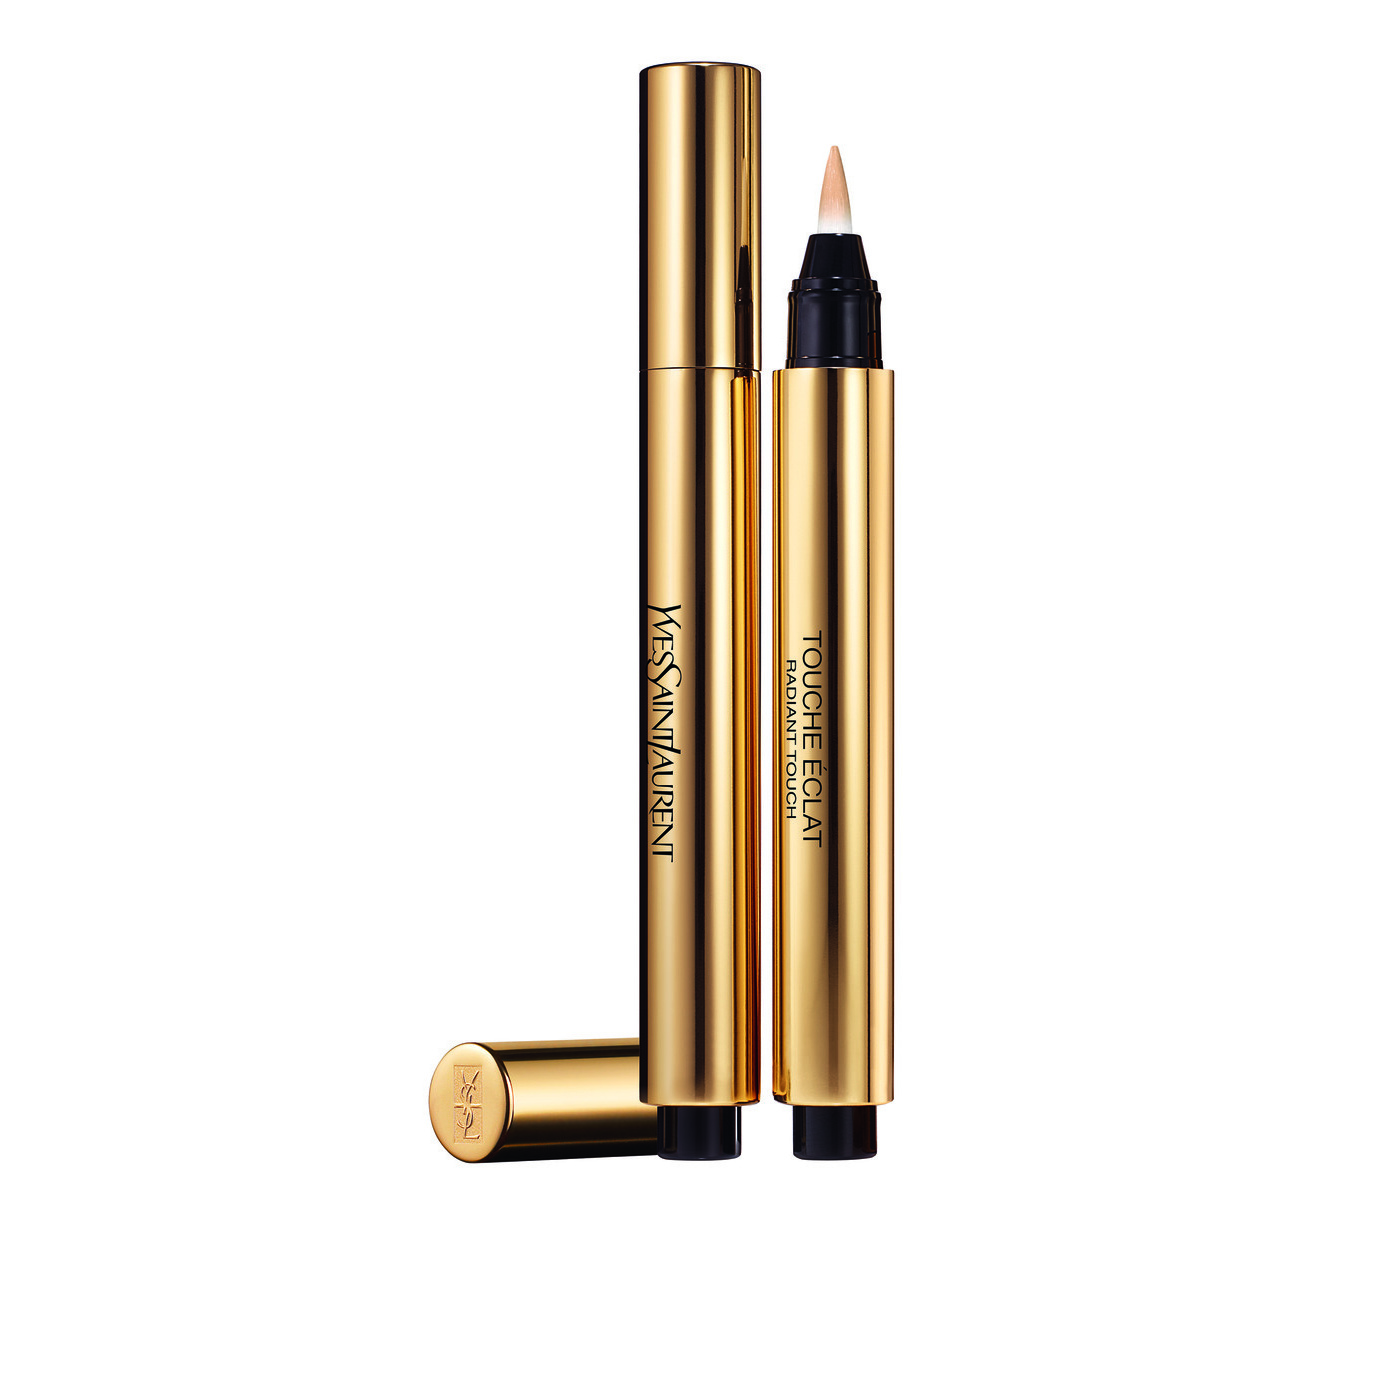 ysl touche eclat highlighter pen